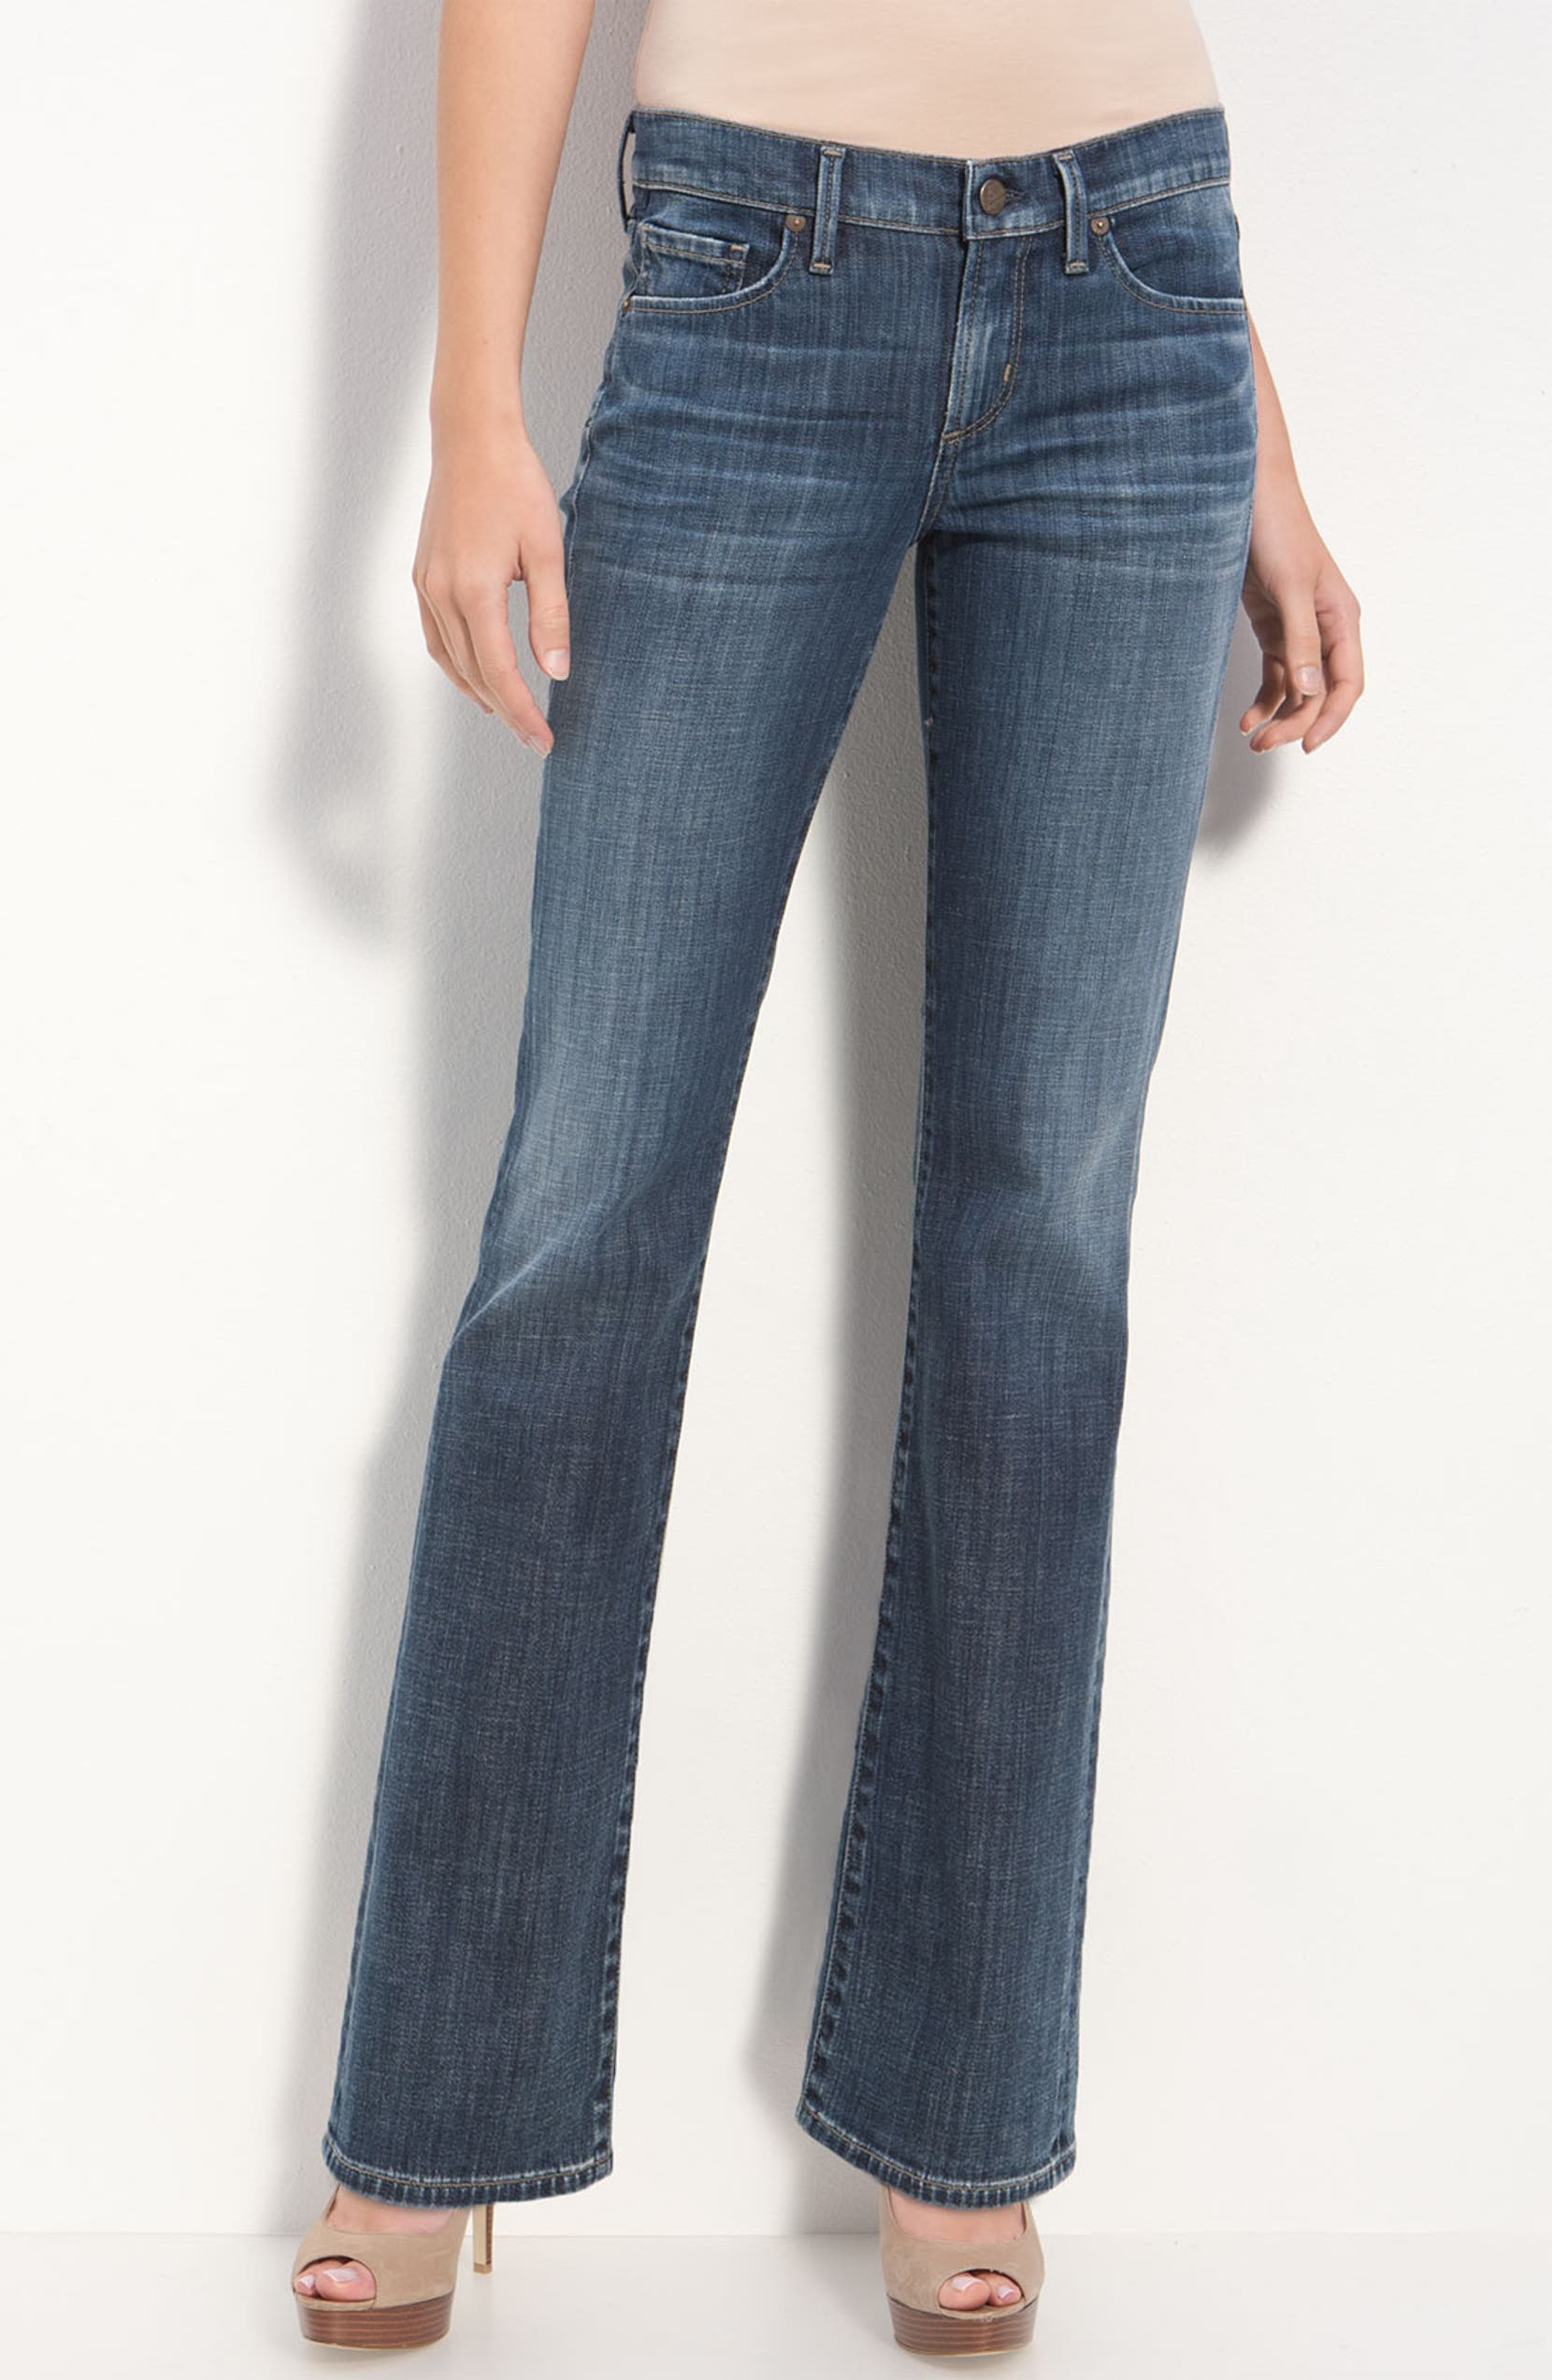 1c58b2a2264 Citizens of Humanity 'Dita' Slim Bootcut Jeans (Decade) (Petite)   Nordstrom